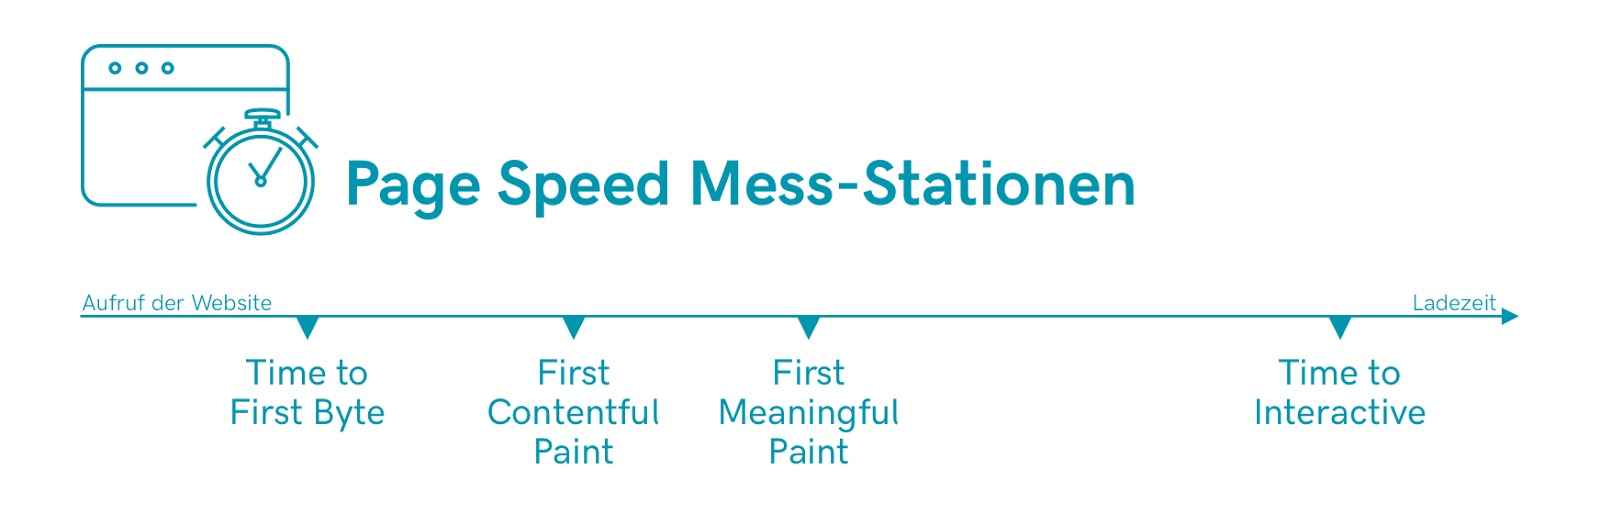 Page_Speed_Mess-Stationen